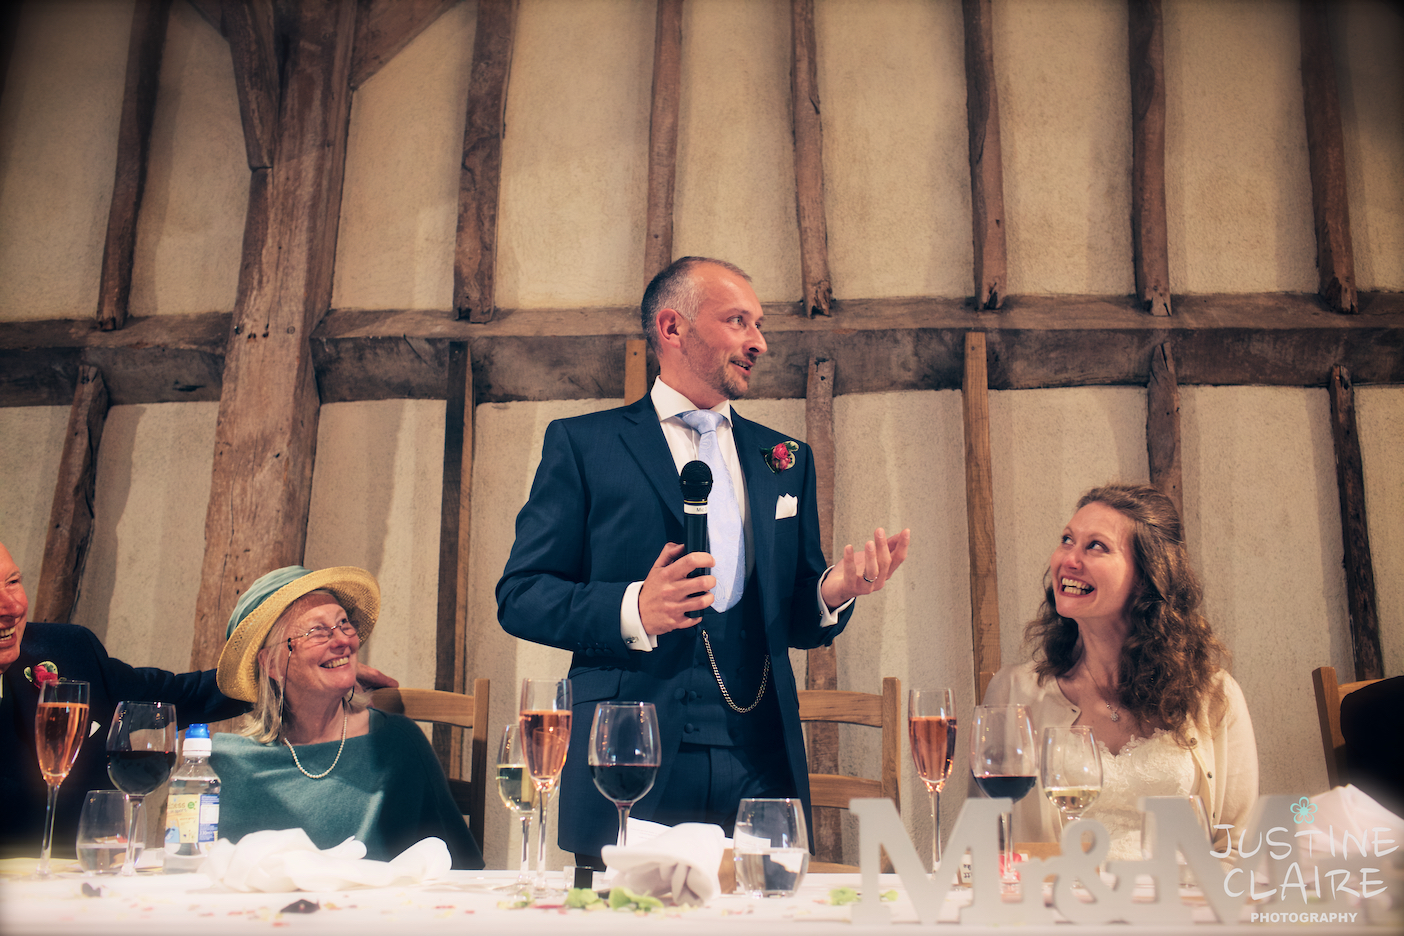 heidi Mark Southend Barns Wedding Photographers preferred suppliers Justine Claire 0643.jpg